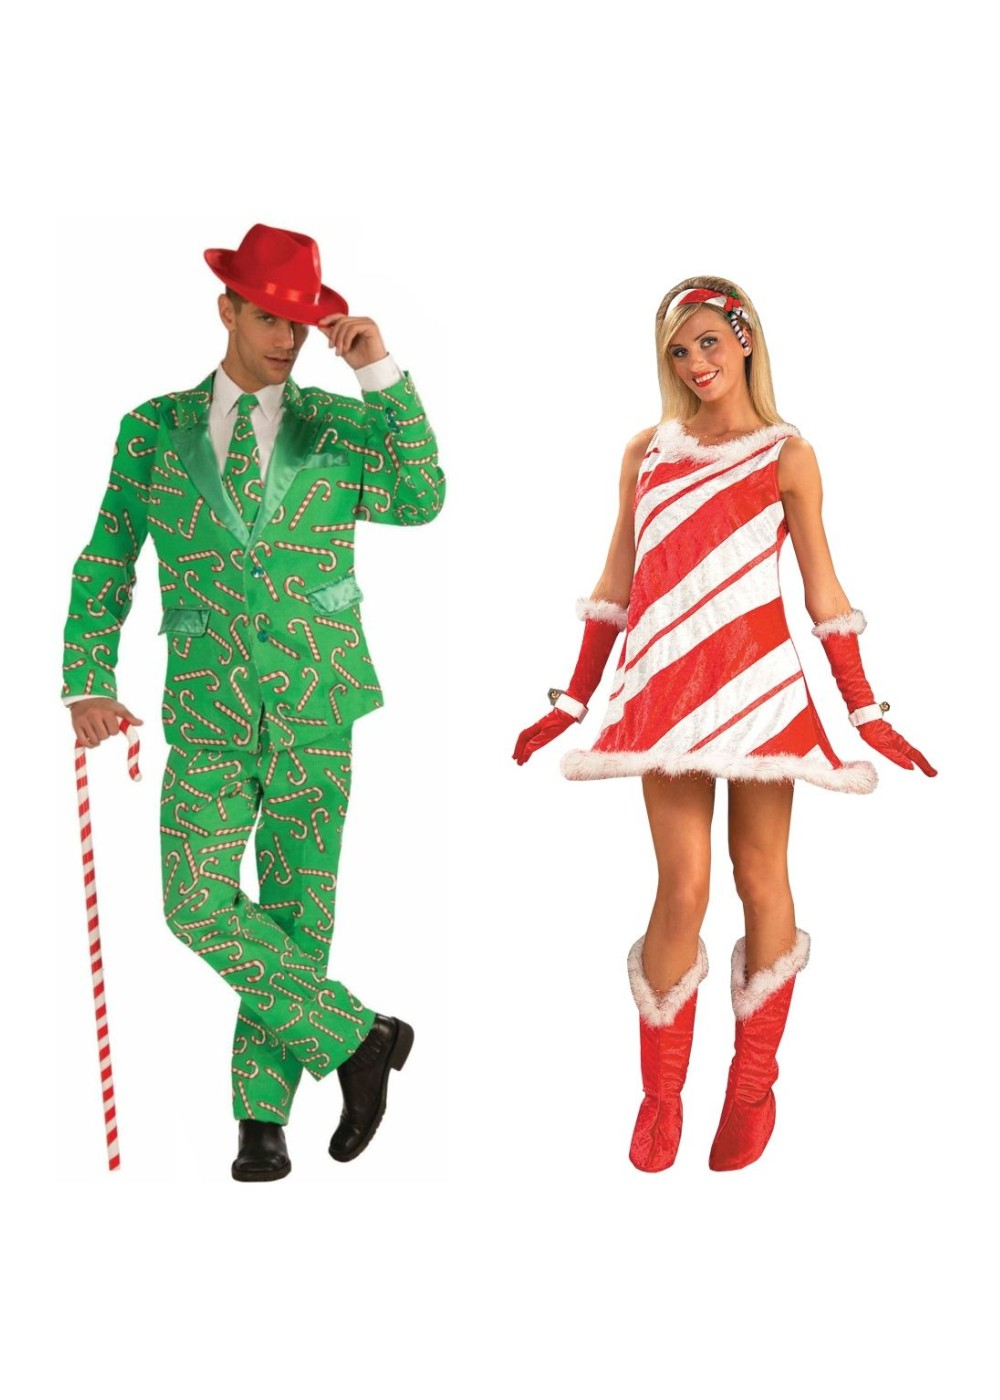 Christmas Candy Cane Men Costume And Candy Cane Jane Women Costume  sc 1 st  Halloween Costumes & Christmas Candy Cane Men Costume and Candy Cane Jane Women Costume ...